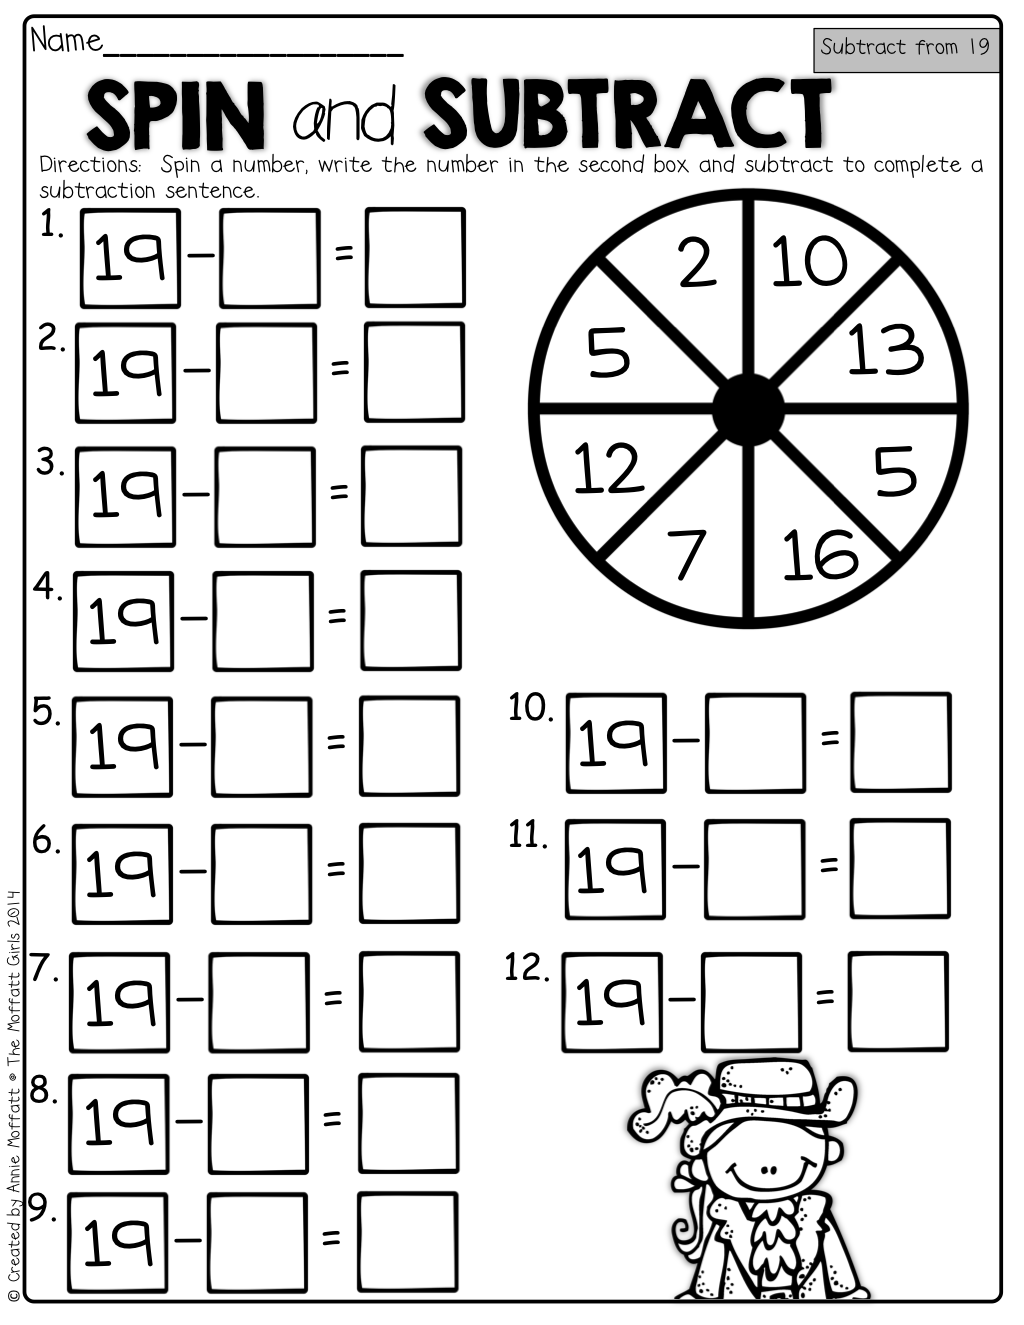 Spin And Subtract Spin The Spinner With A Paperclip And Pencil And Subtract Such A Fun And Interactive Way To Pra Math Subtraction Math Packets Subtraction [ 1325 x 1024 Pixel ]